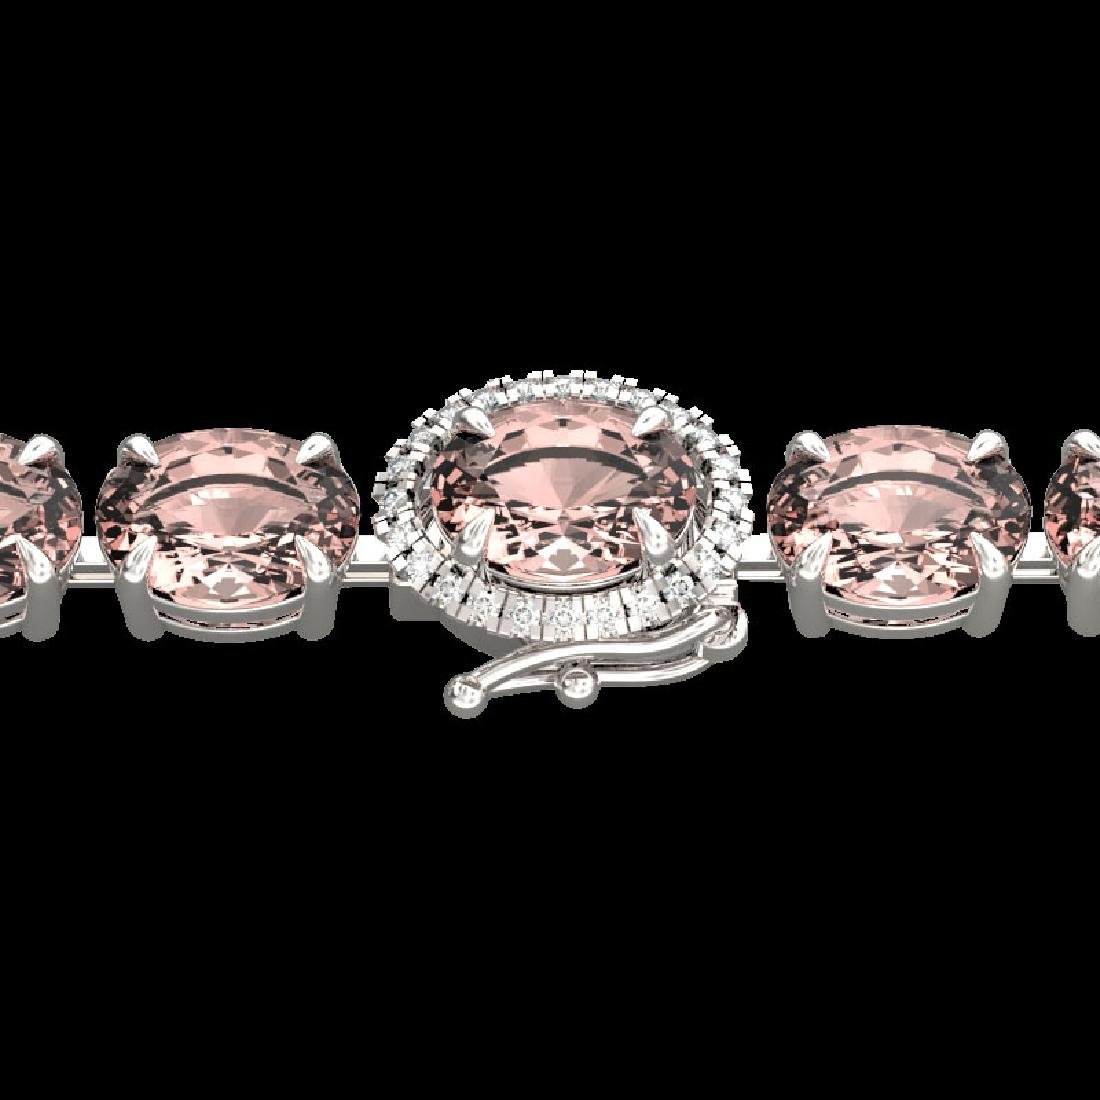 26 CTW Morganite & VS/SI Diamond Tennis Micro Halo